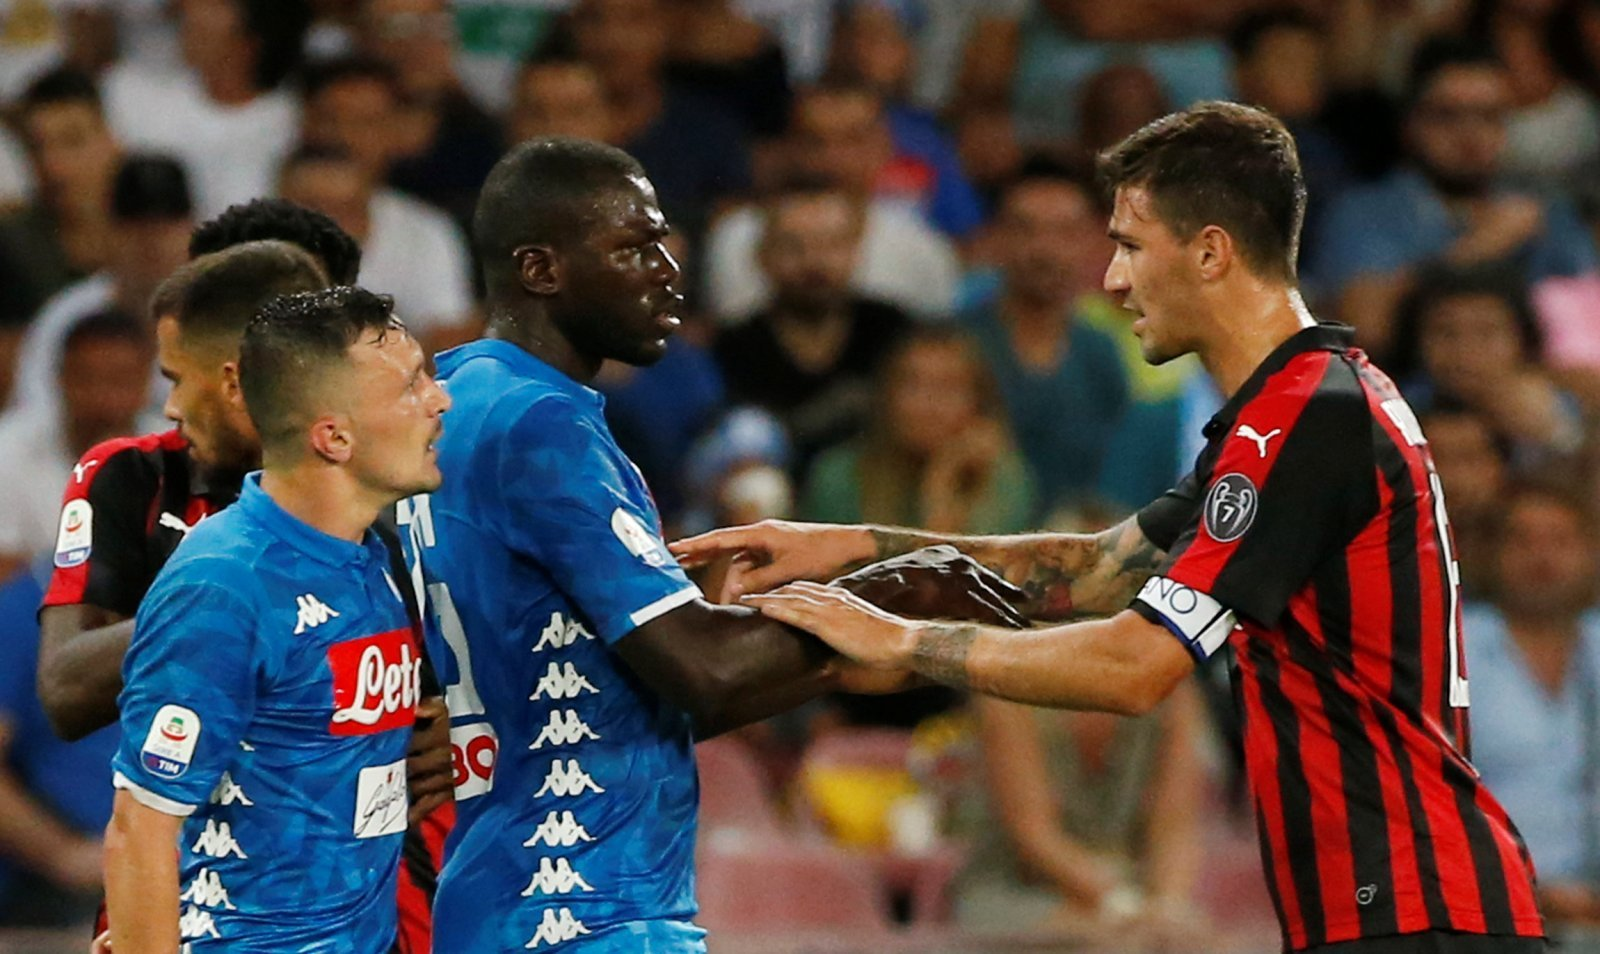 Manchester United's central defender search: Koulibaly miles ahead of Romagnoli